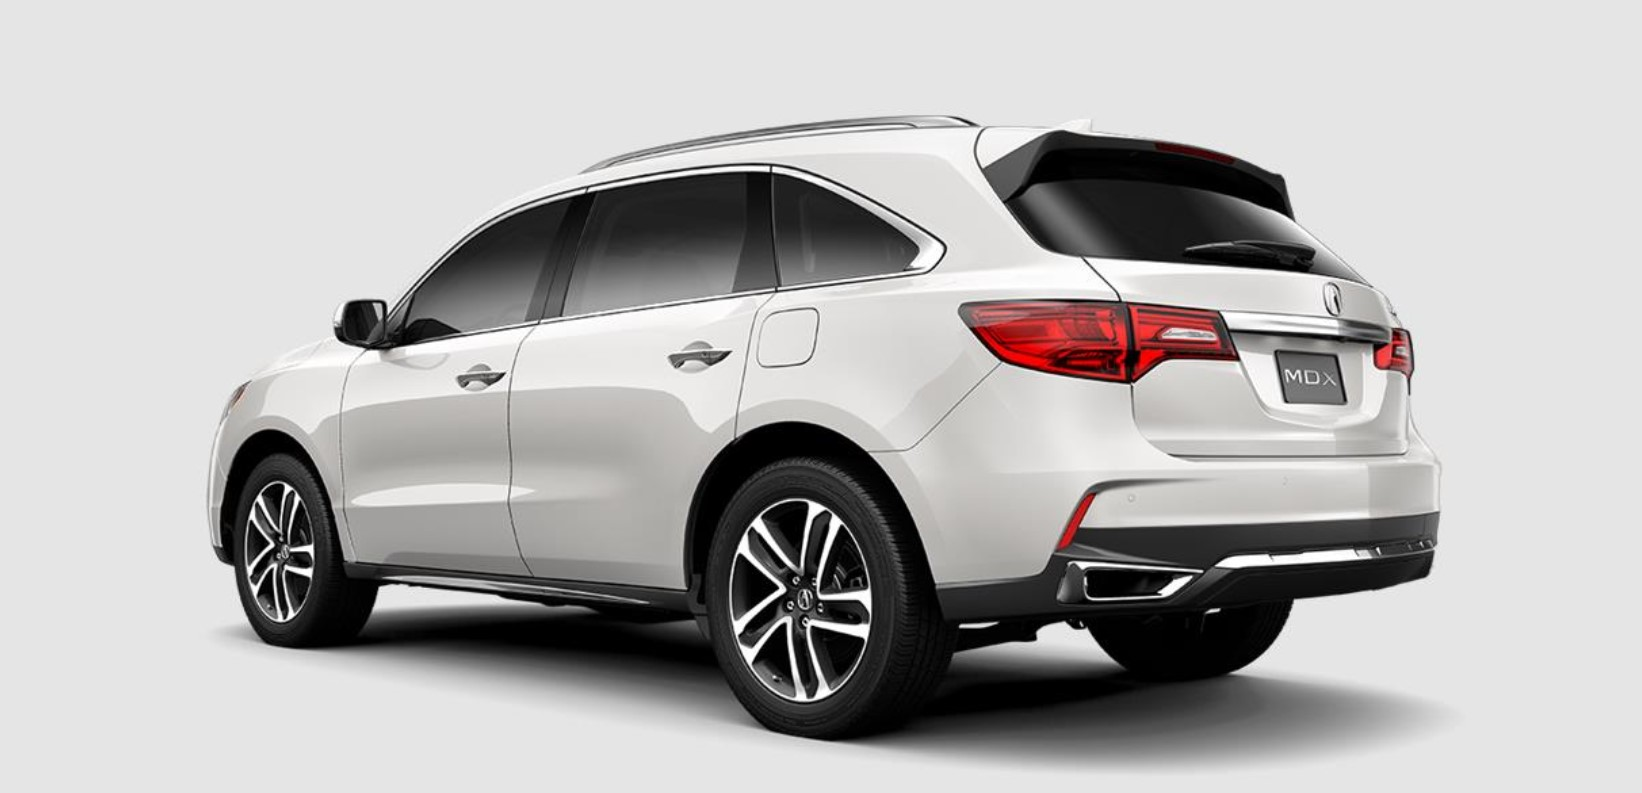 hd entertainment package mdx advance acura pictures car